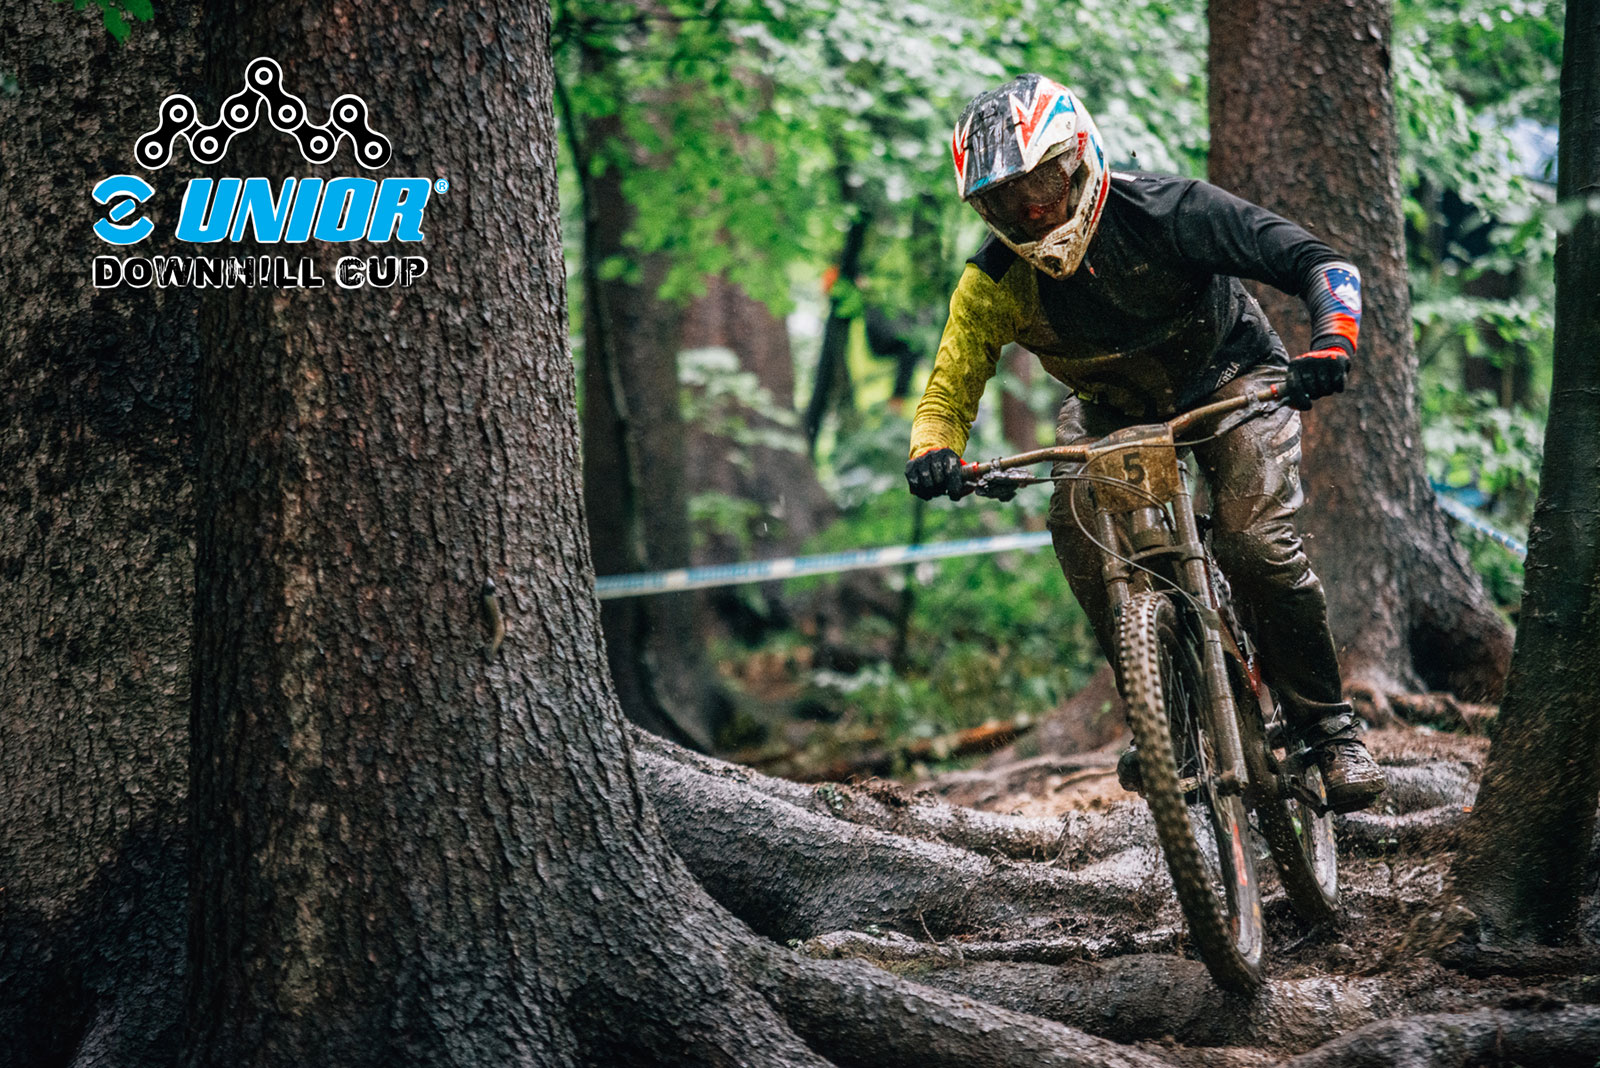 Unior DH Cup